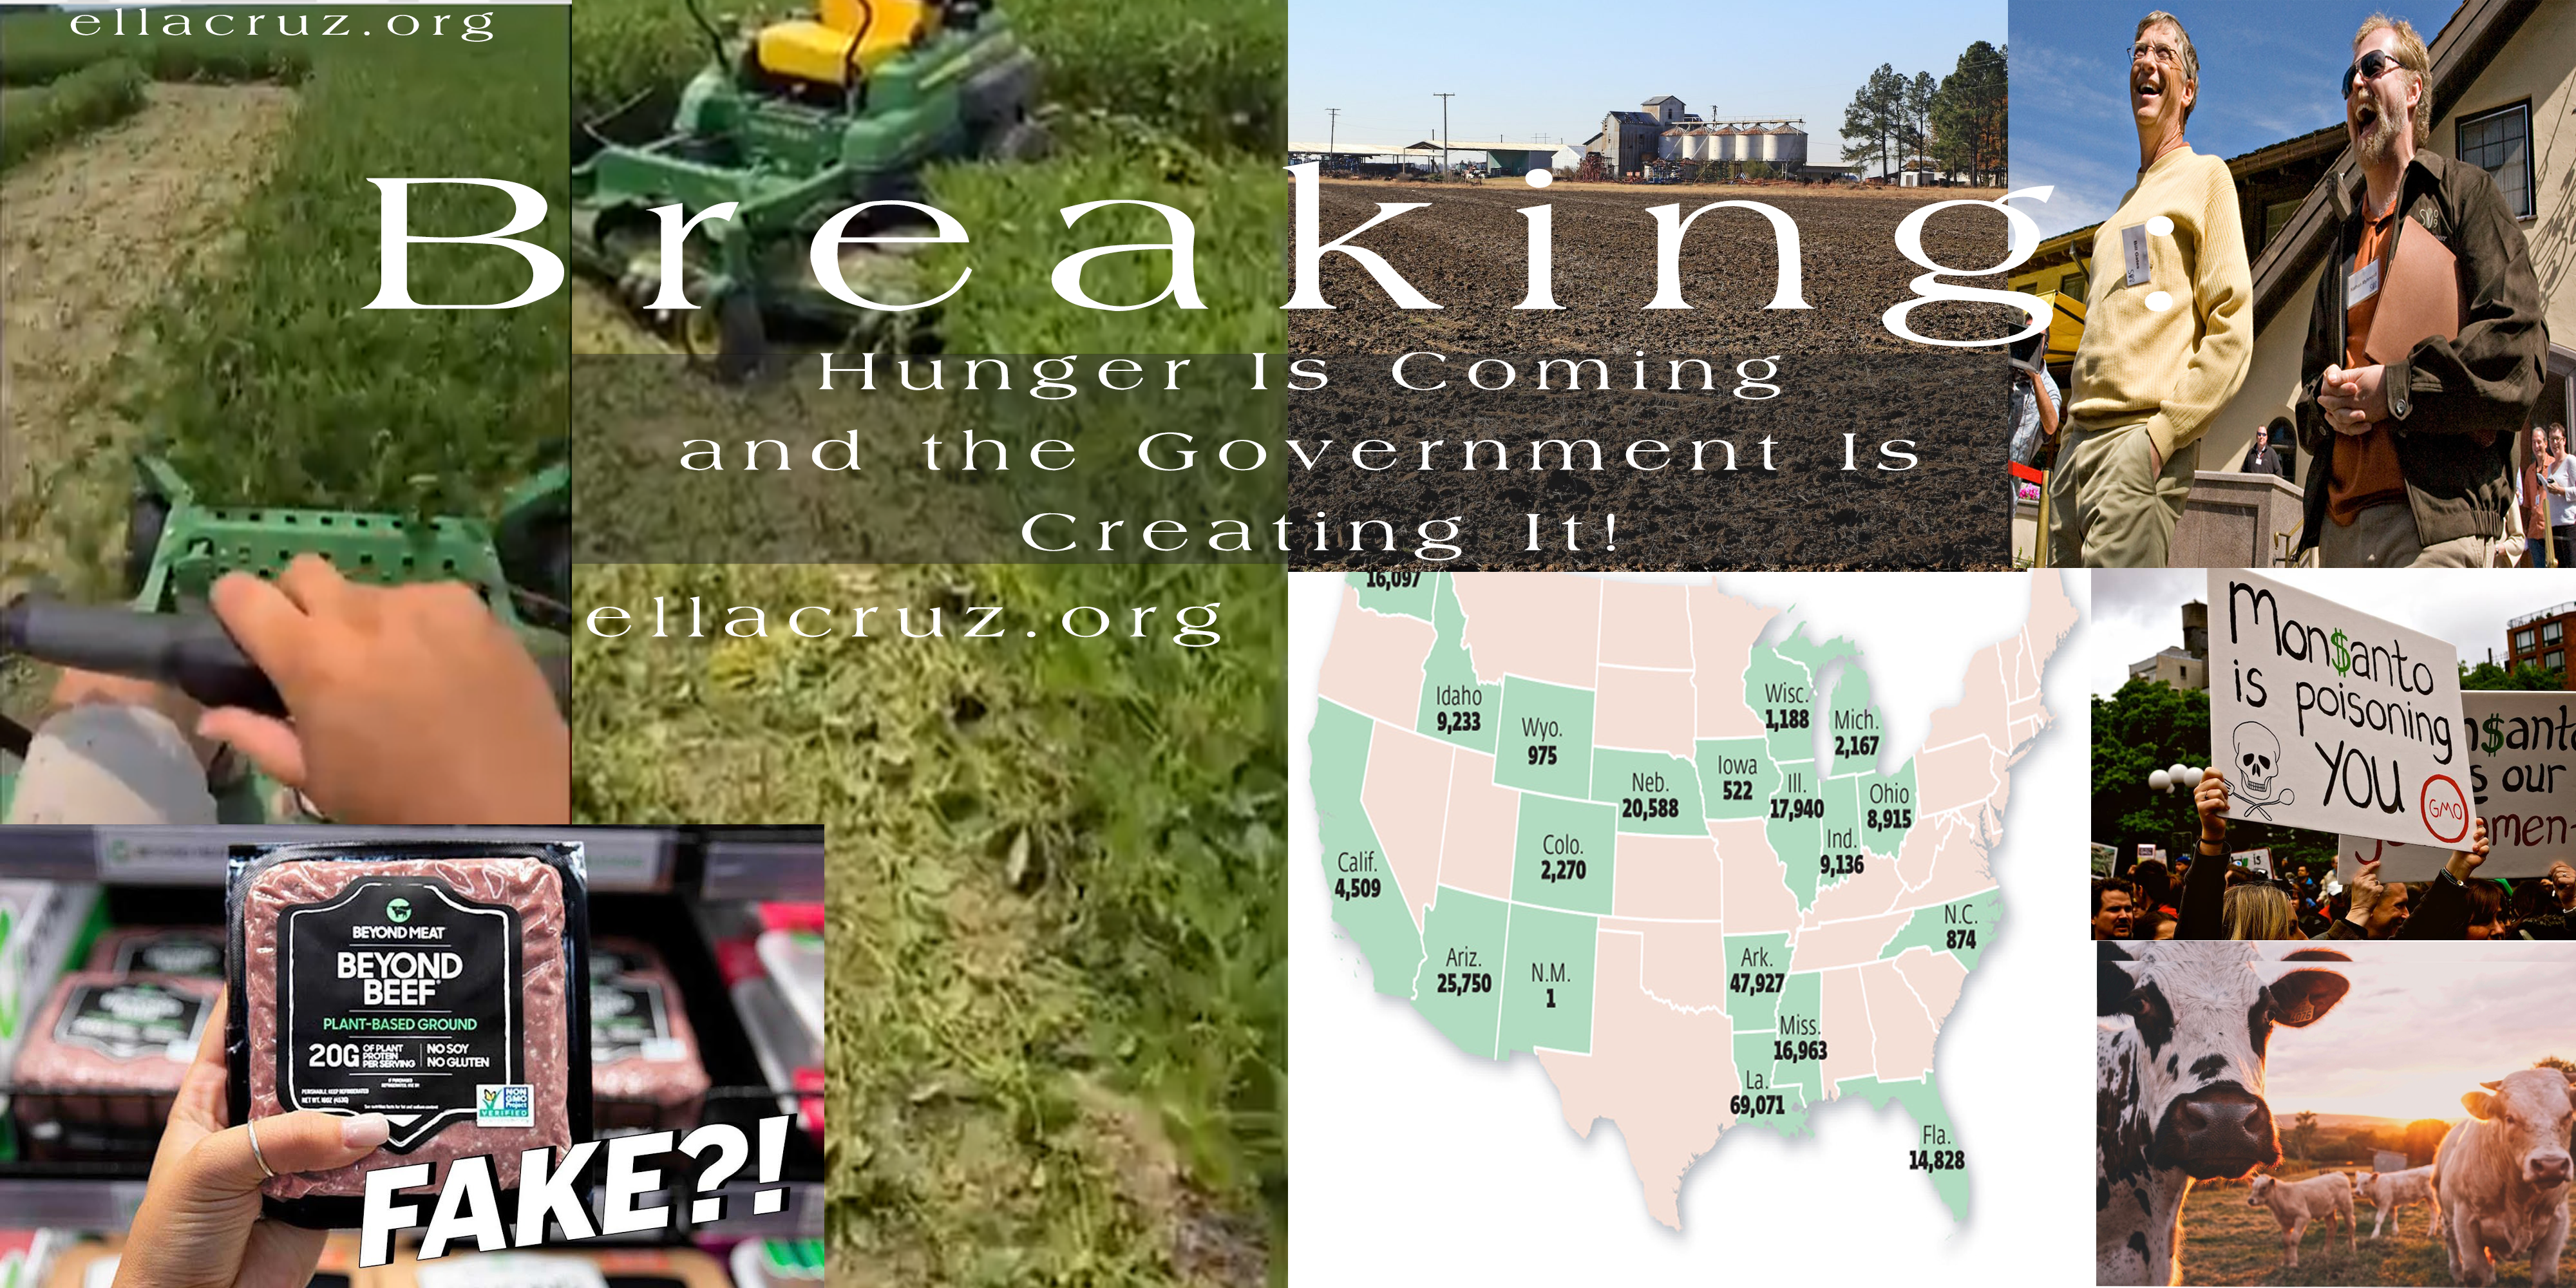 reaking: Hunger Is Coming and the Government Is Creating It! ellacruz.org